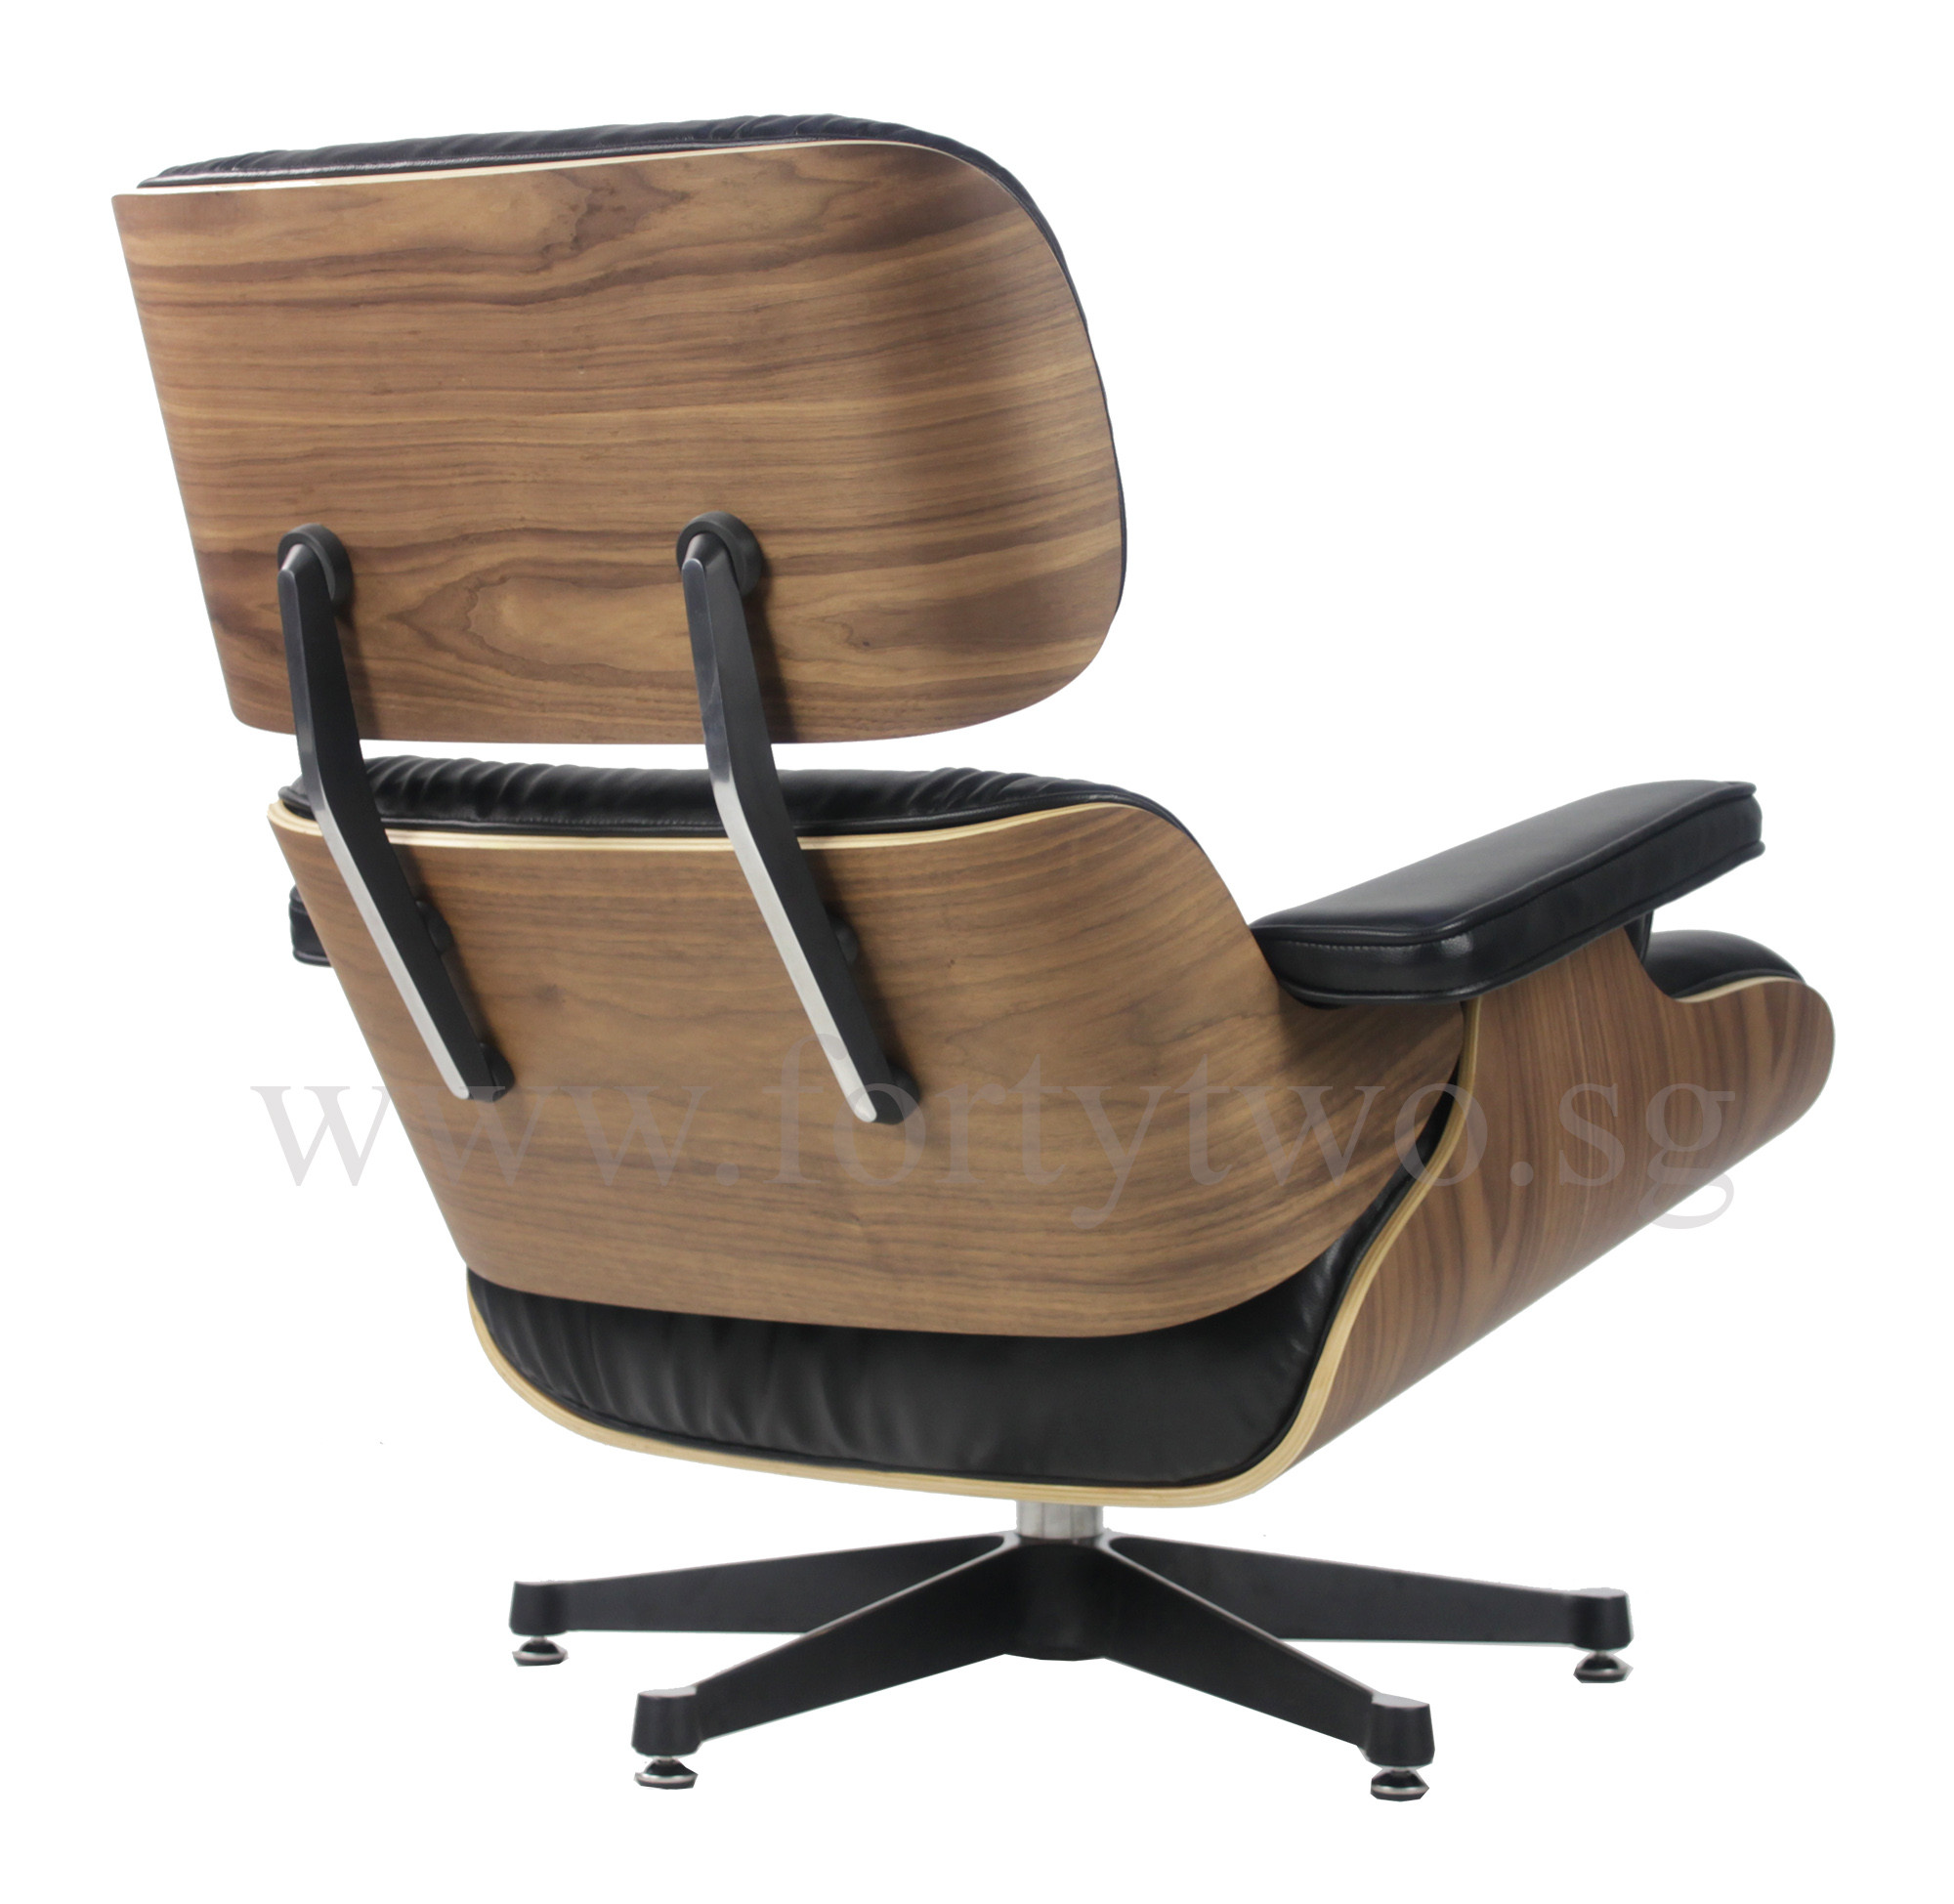 Eames Replica Replica Eames Lounge Chair And Ottoman Eames Lounge Chair